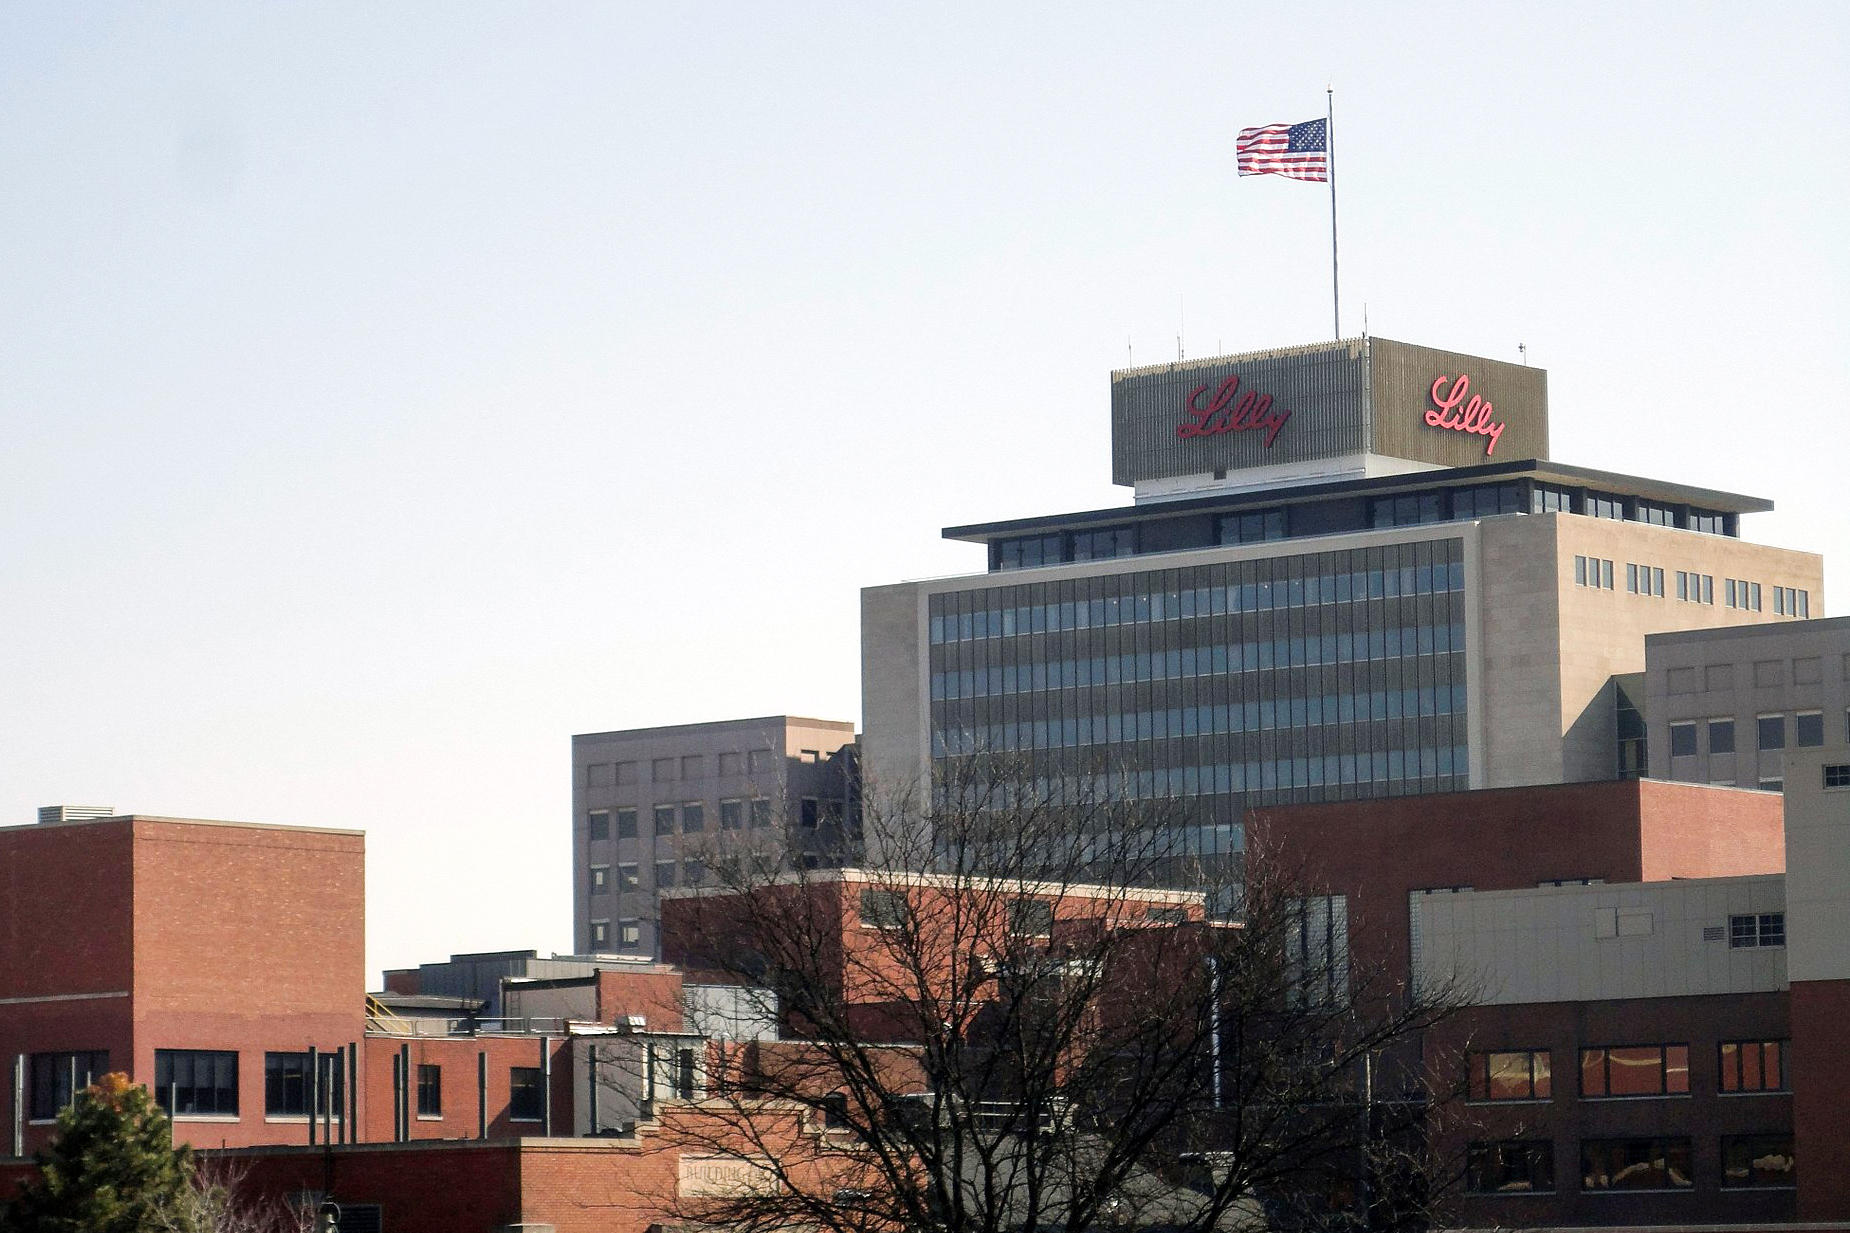 eli lilly campus map Eli Lilly Offers Drive Thru Covid 19 Tests For Health Care Workers eli lilly campus map